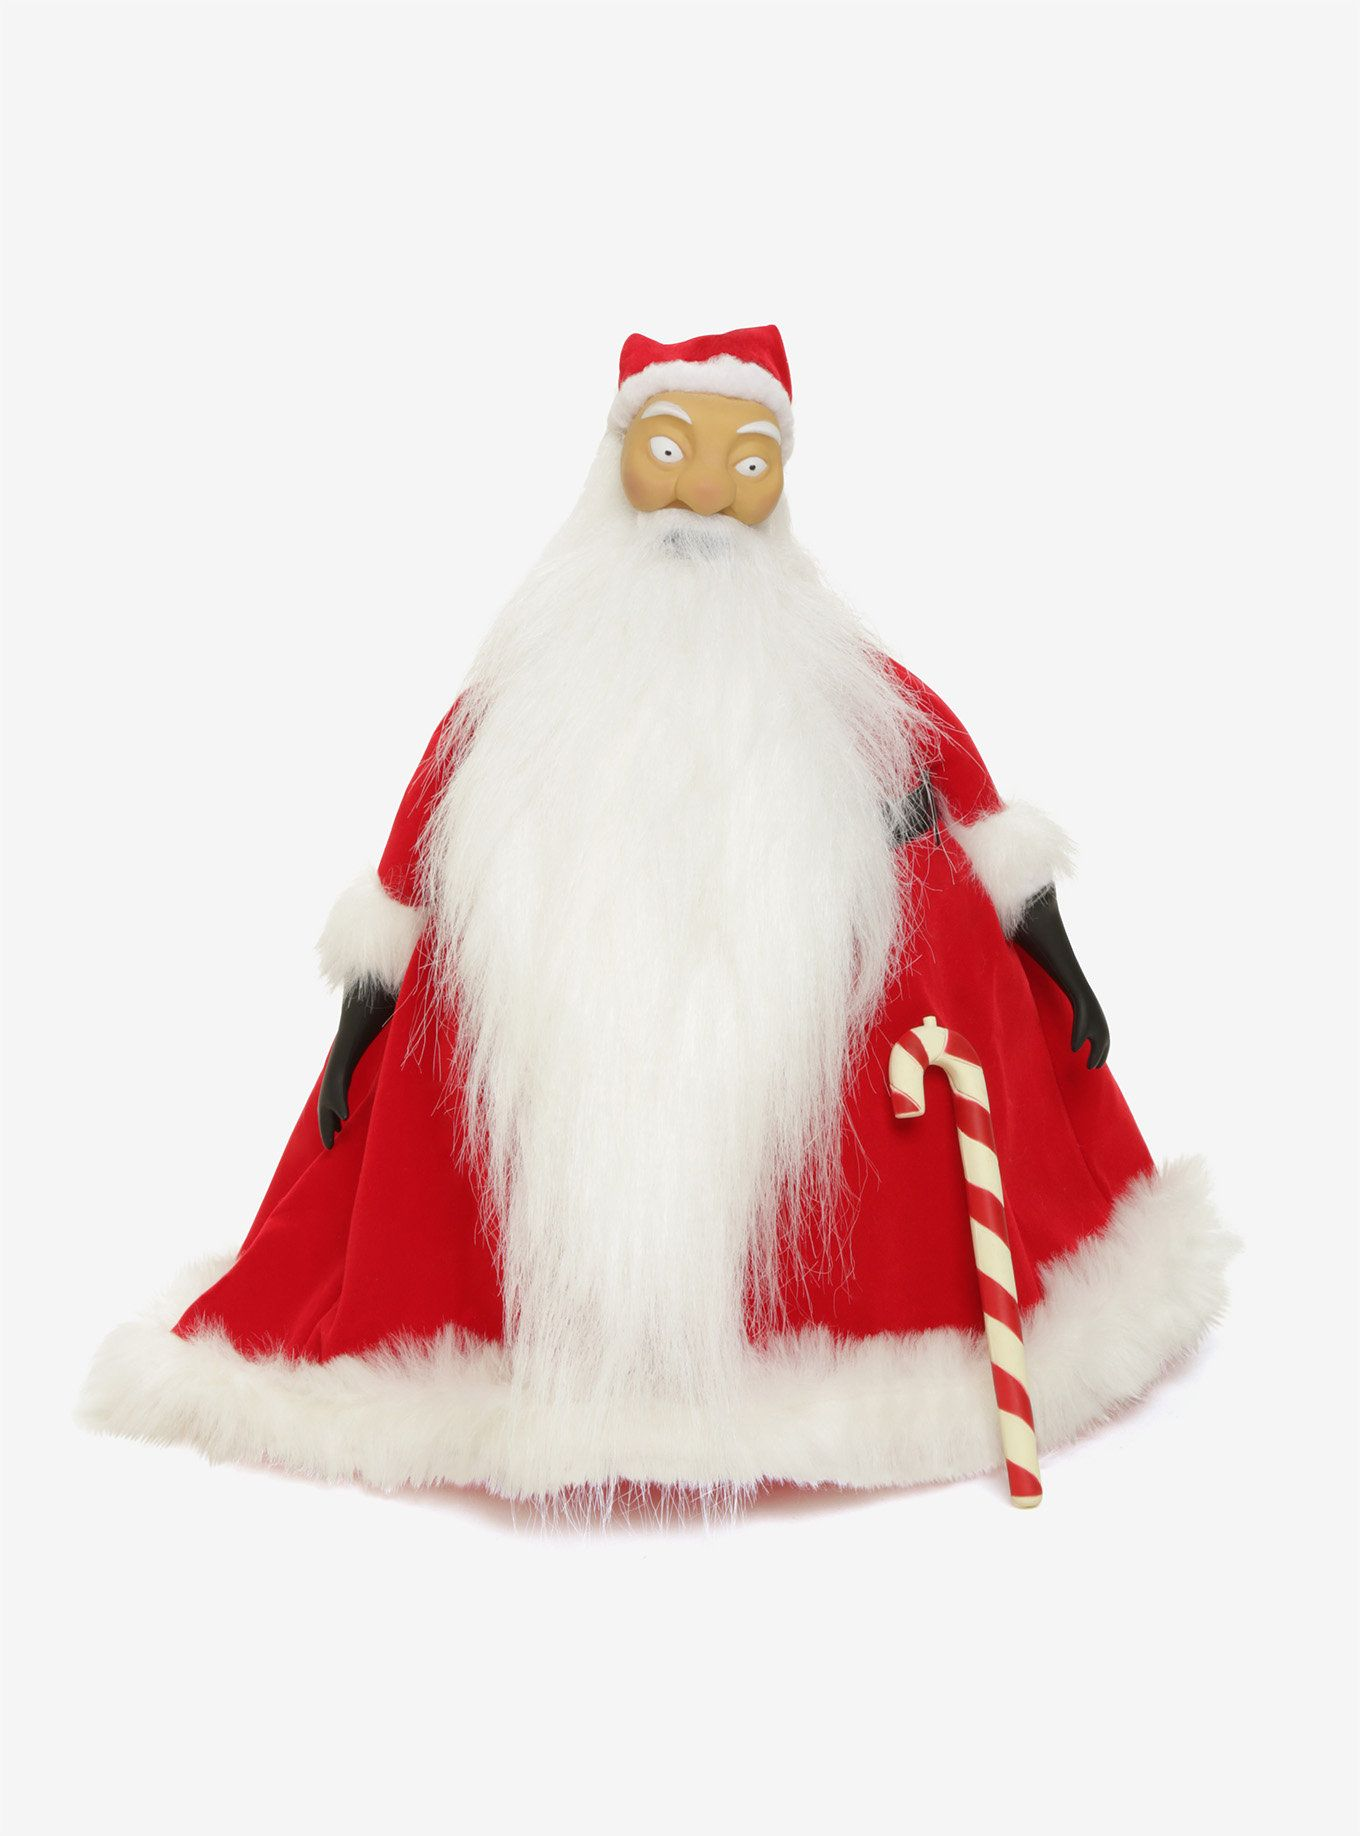 The Nightmare Before Christmas Deluxe Collection Doll Santa Claus